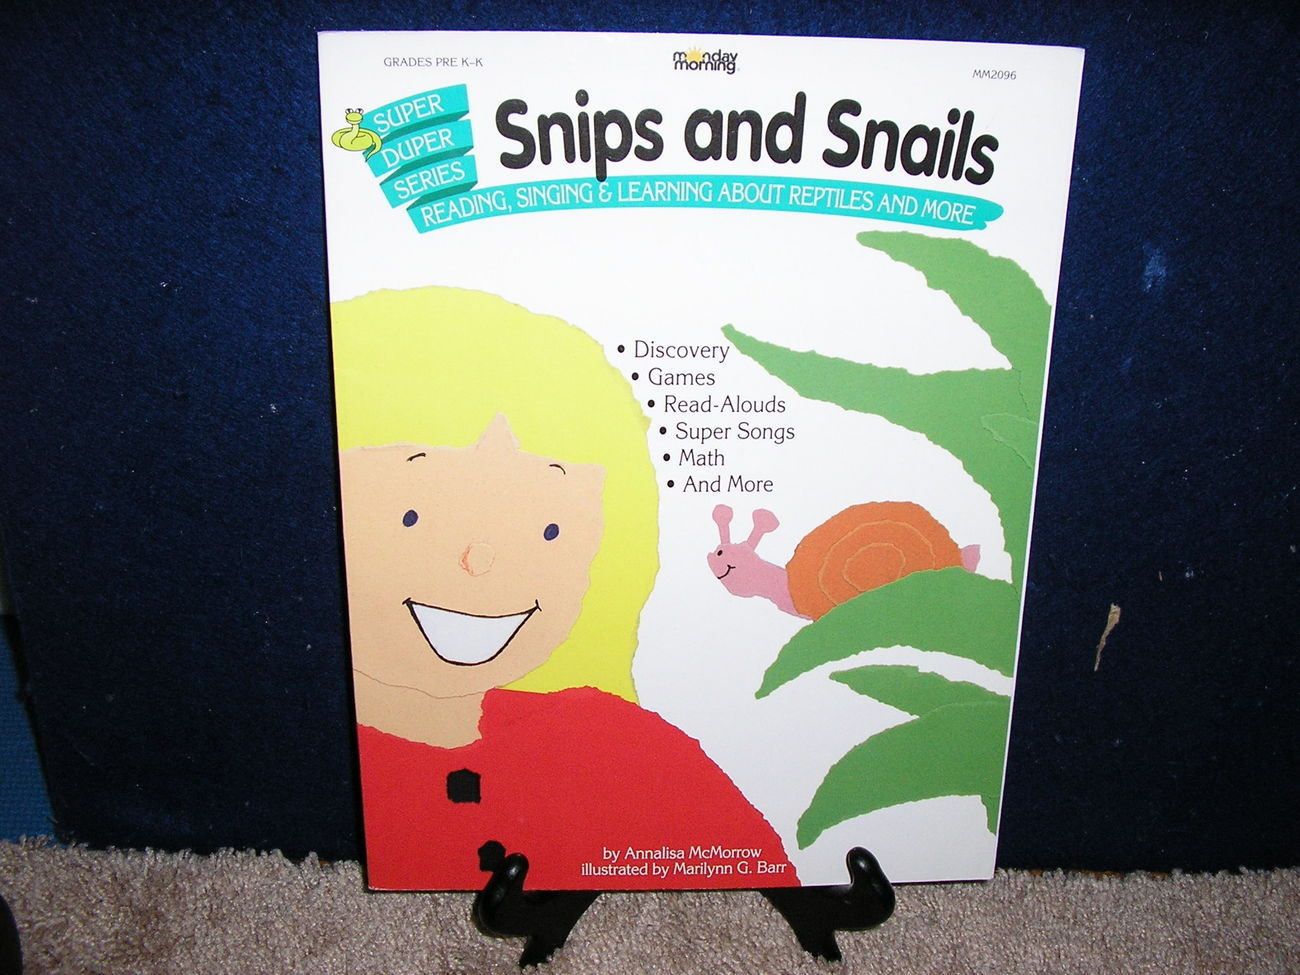 Snips and Snails Super-Duper Series by Annalisa McMorrow